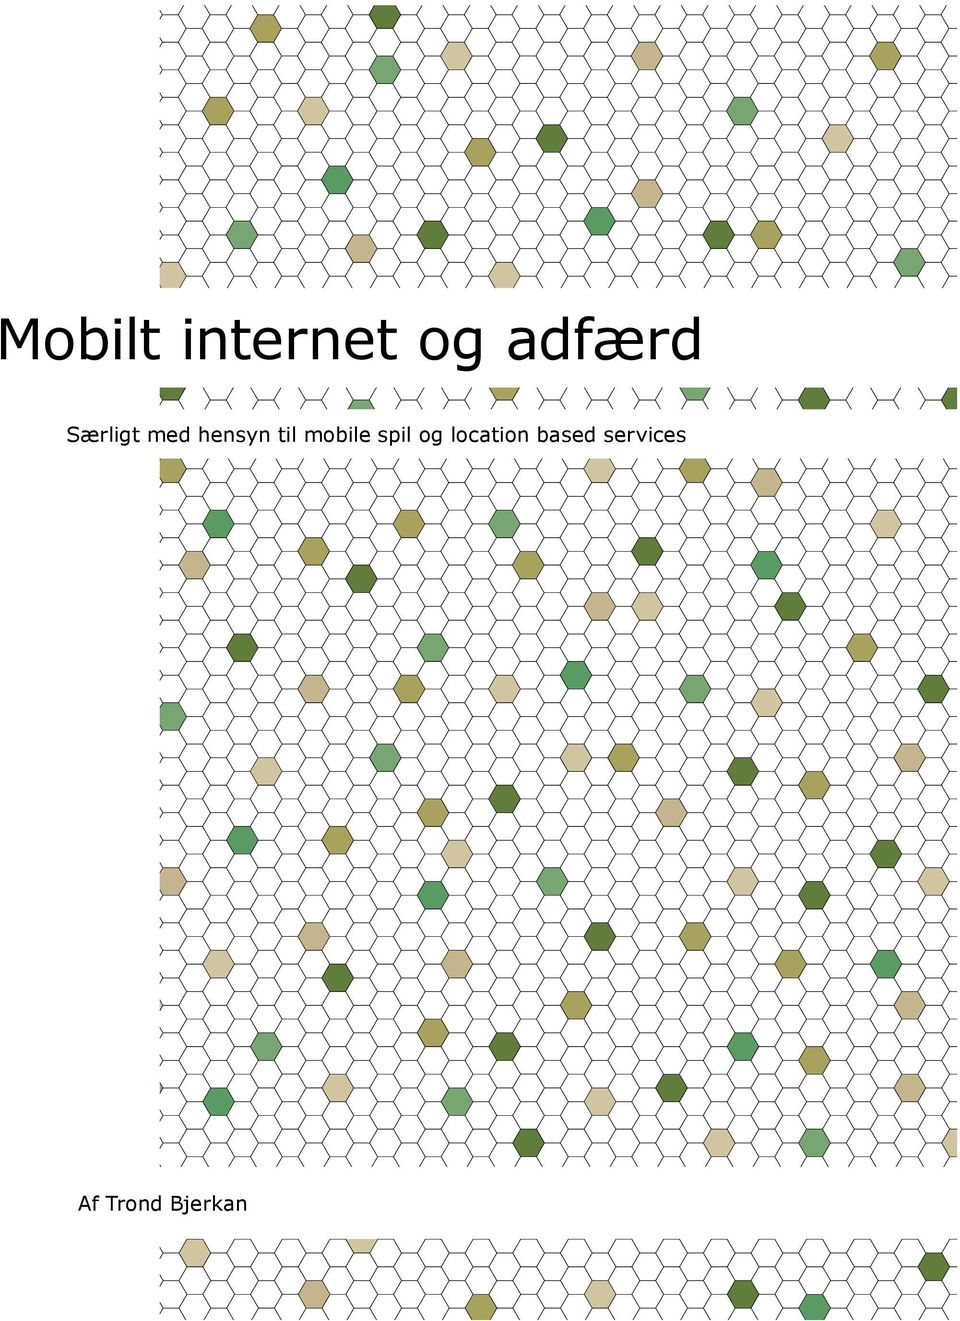 mobile spil og location